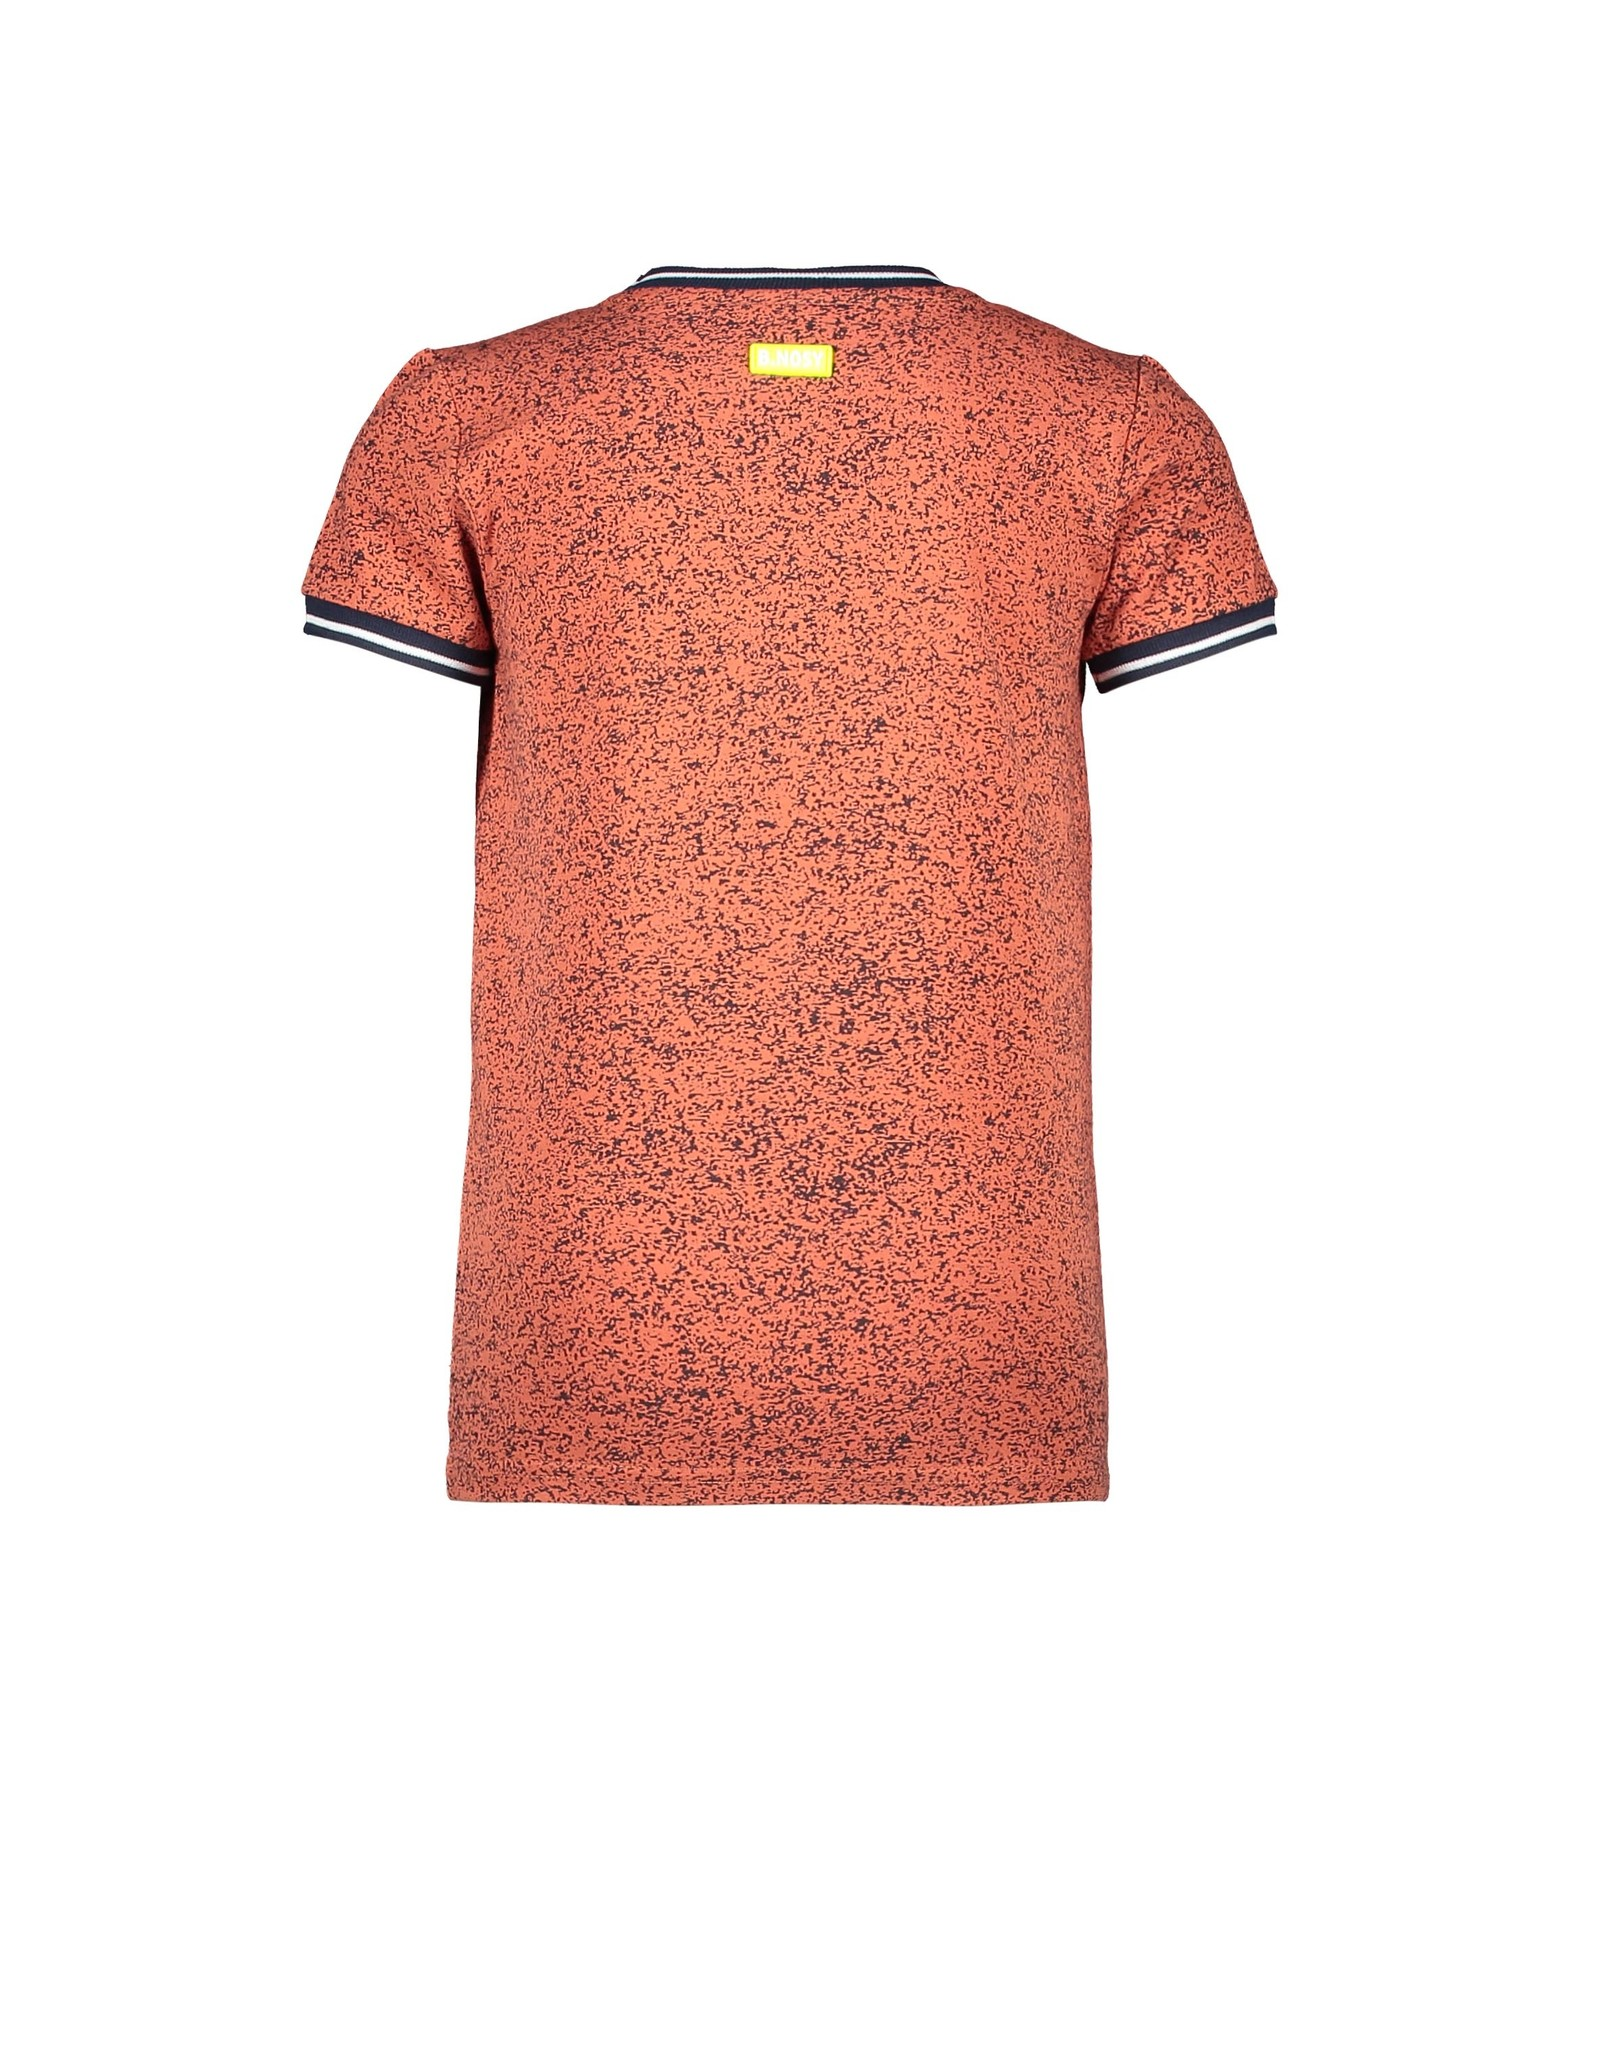 B.Nosy Boys ss shirt with allover melee print